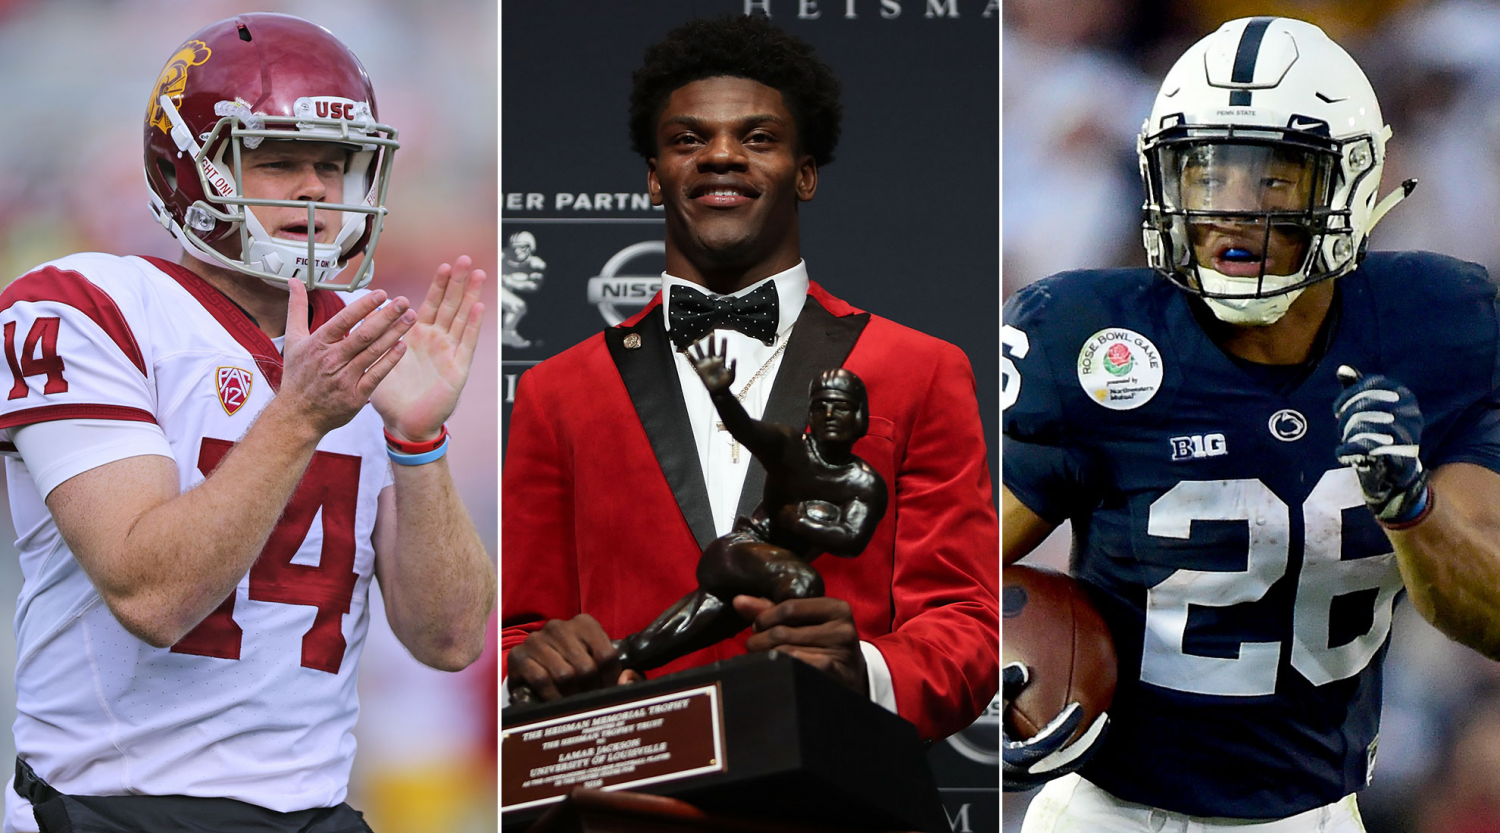 Sam Darnold (left), Lamar Jackson (middle), and Saquon Barkley (right), all hope to get their team to the top of the polls.